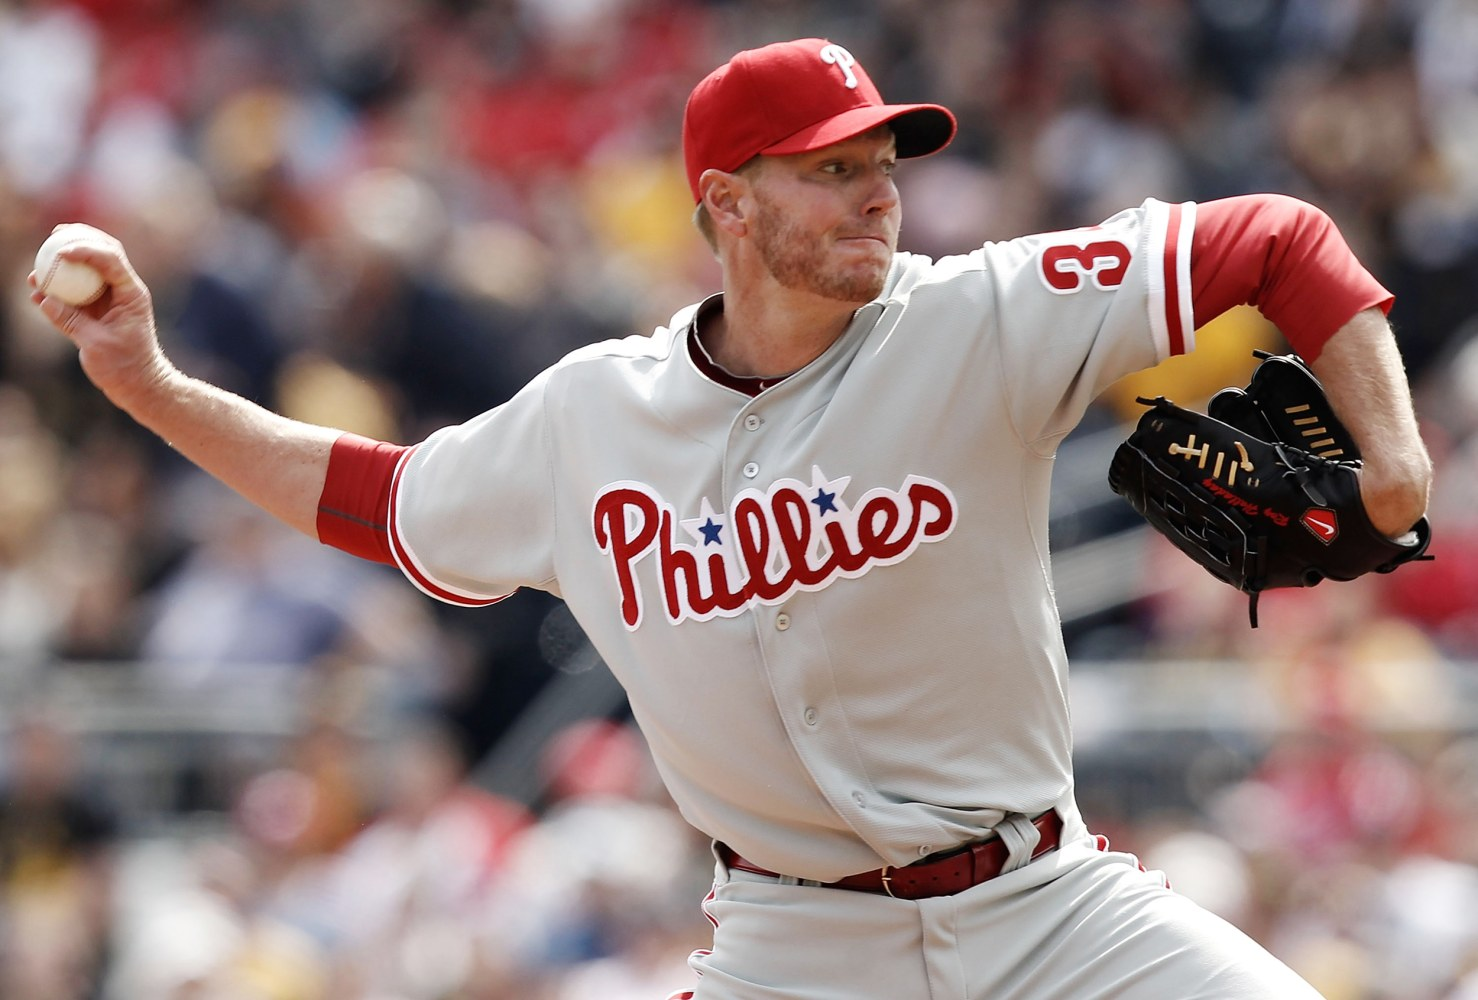 Roy Halladay Latest News, Photos, and Videos